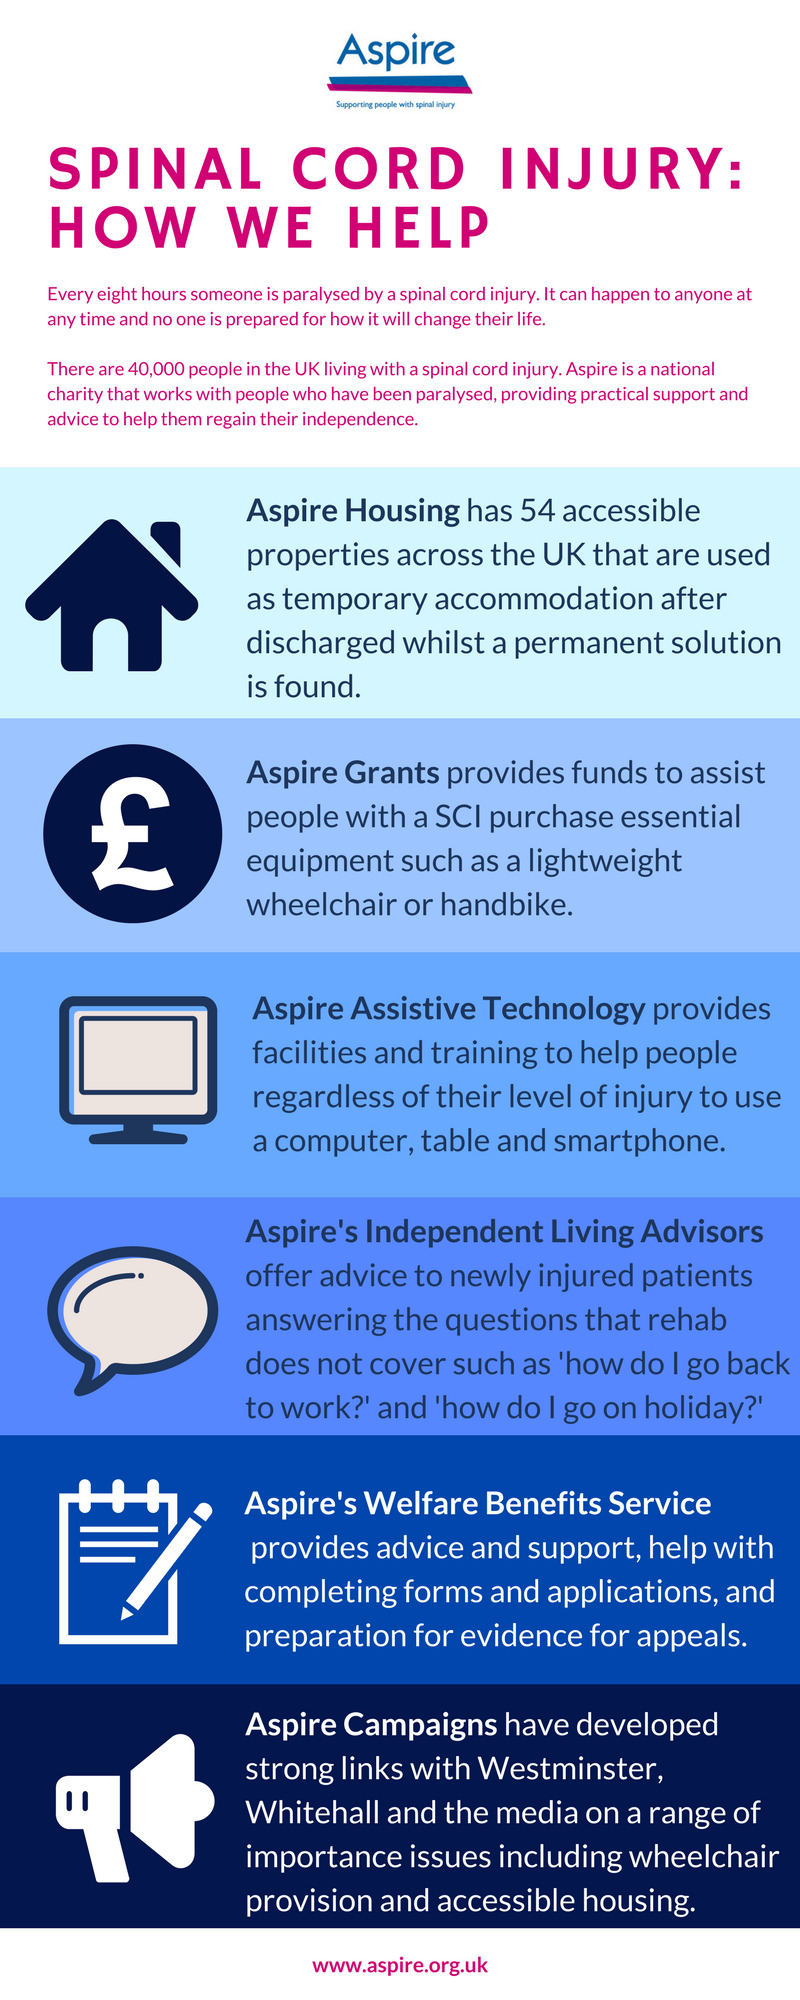 Infographic about how Aspire helps